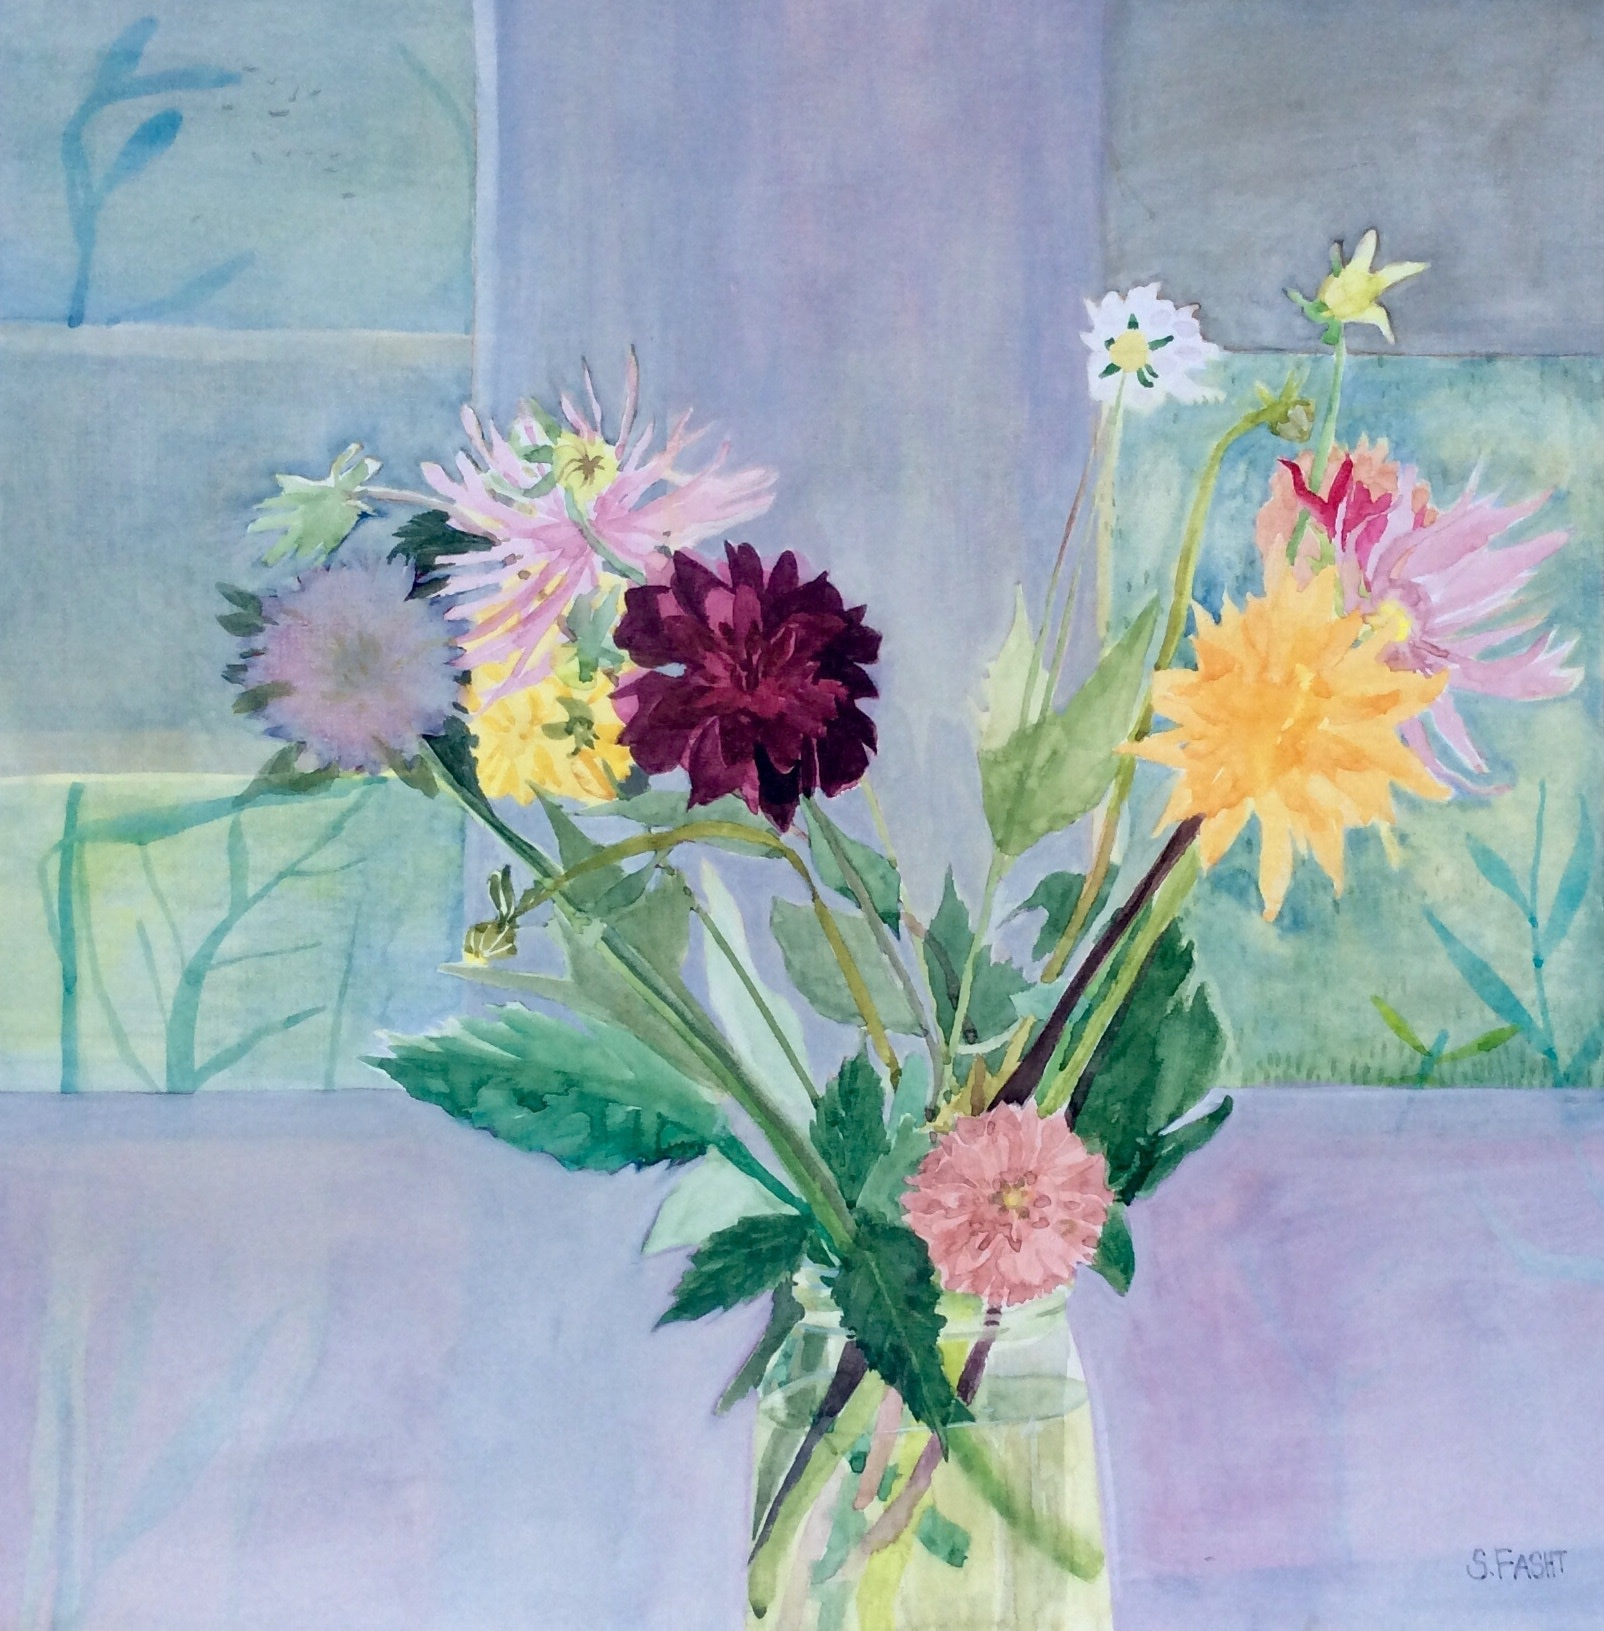 """<span class=""""link fancybox-details-link""""><a href=""""/artists/168-suzy-fasht/works/11388-suzy-fasht-flowers-from-the-cutting-garden/"""">View Detail Page</a></span><div class=""""artist""""><span class=""""artist""""><strong>Suzy Fasht</strong></span></div><div class=""""title""""><em>Flowers from the Cutting Garden</em></div><div class=""""medium"""">watercolour</div><div class=""""price"""">£550.00</div>"""